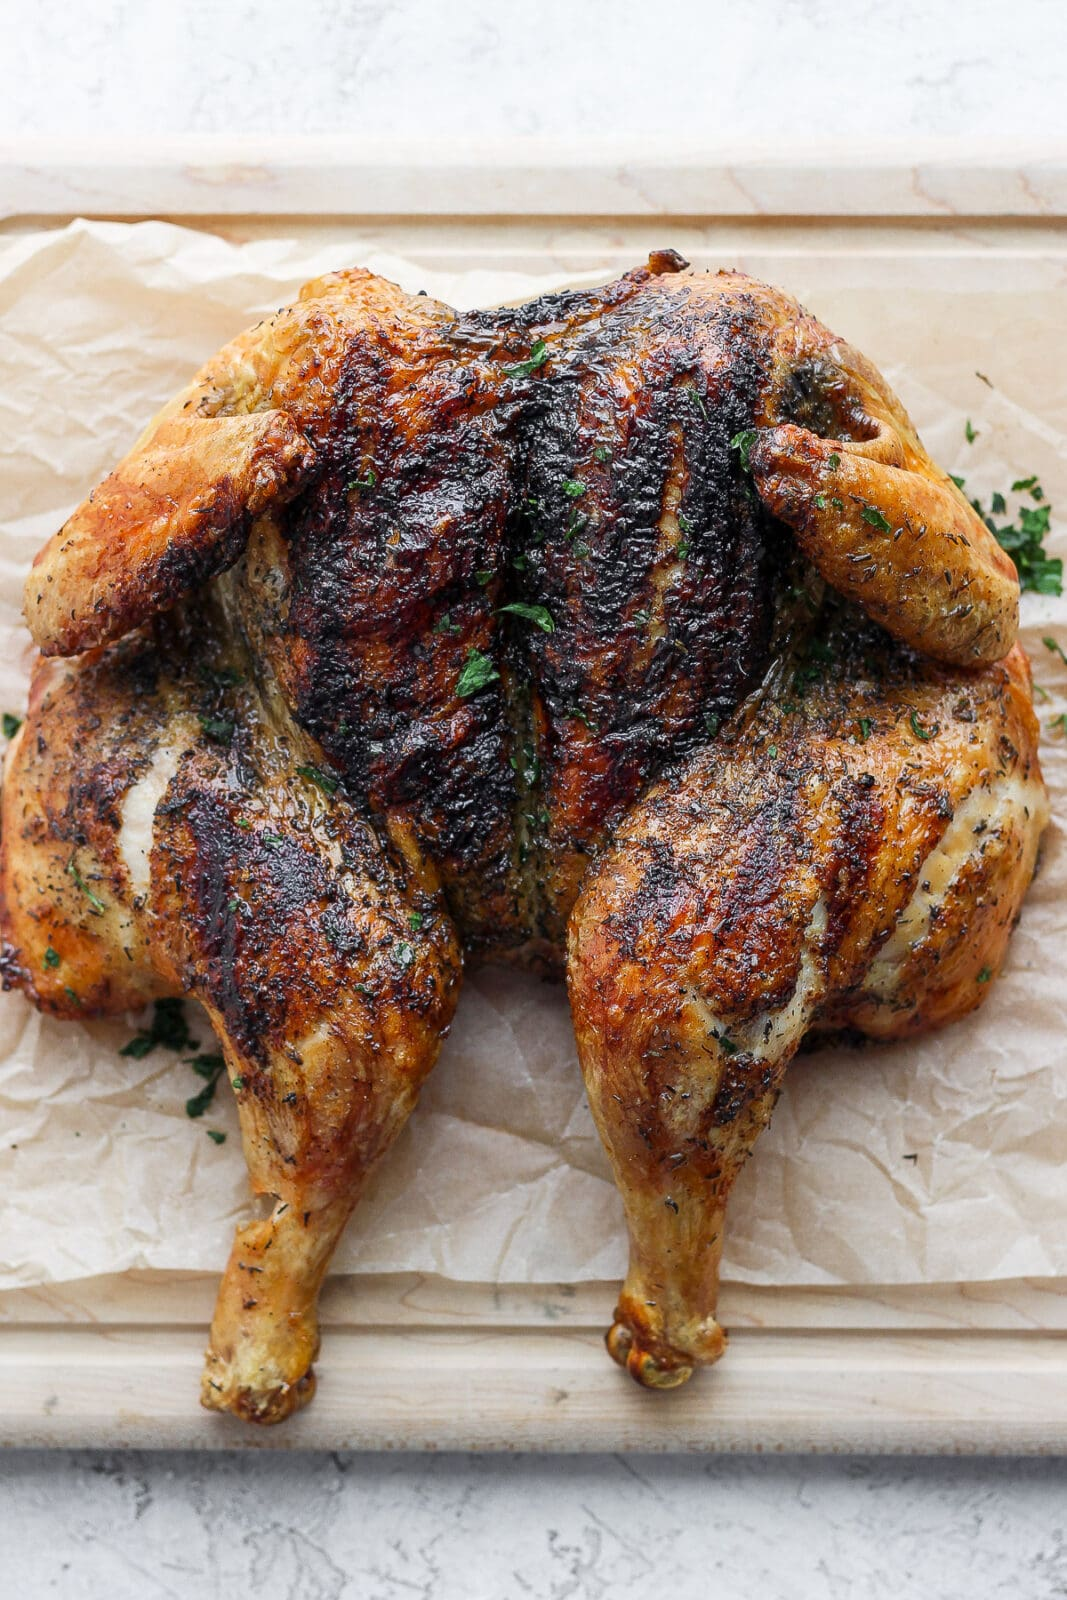 Picture of a grilled spatchcock chicken.